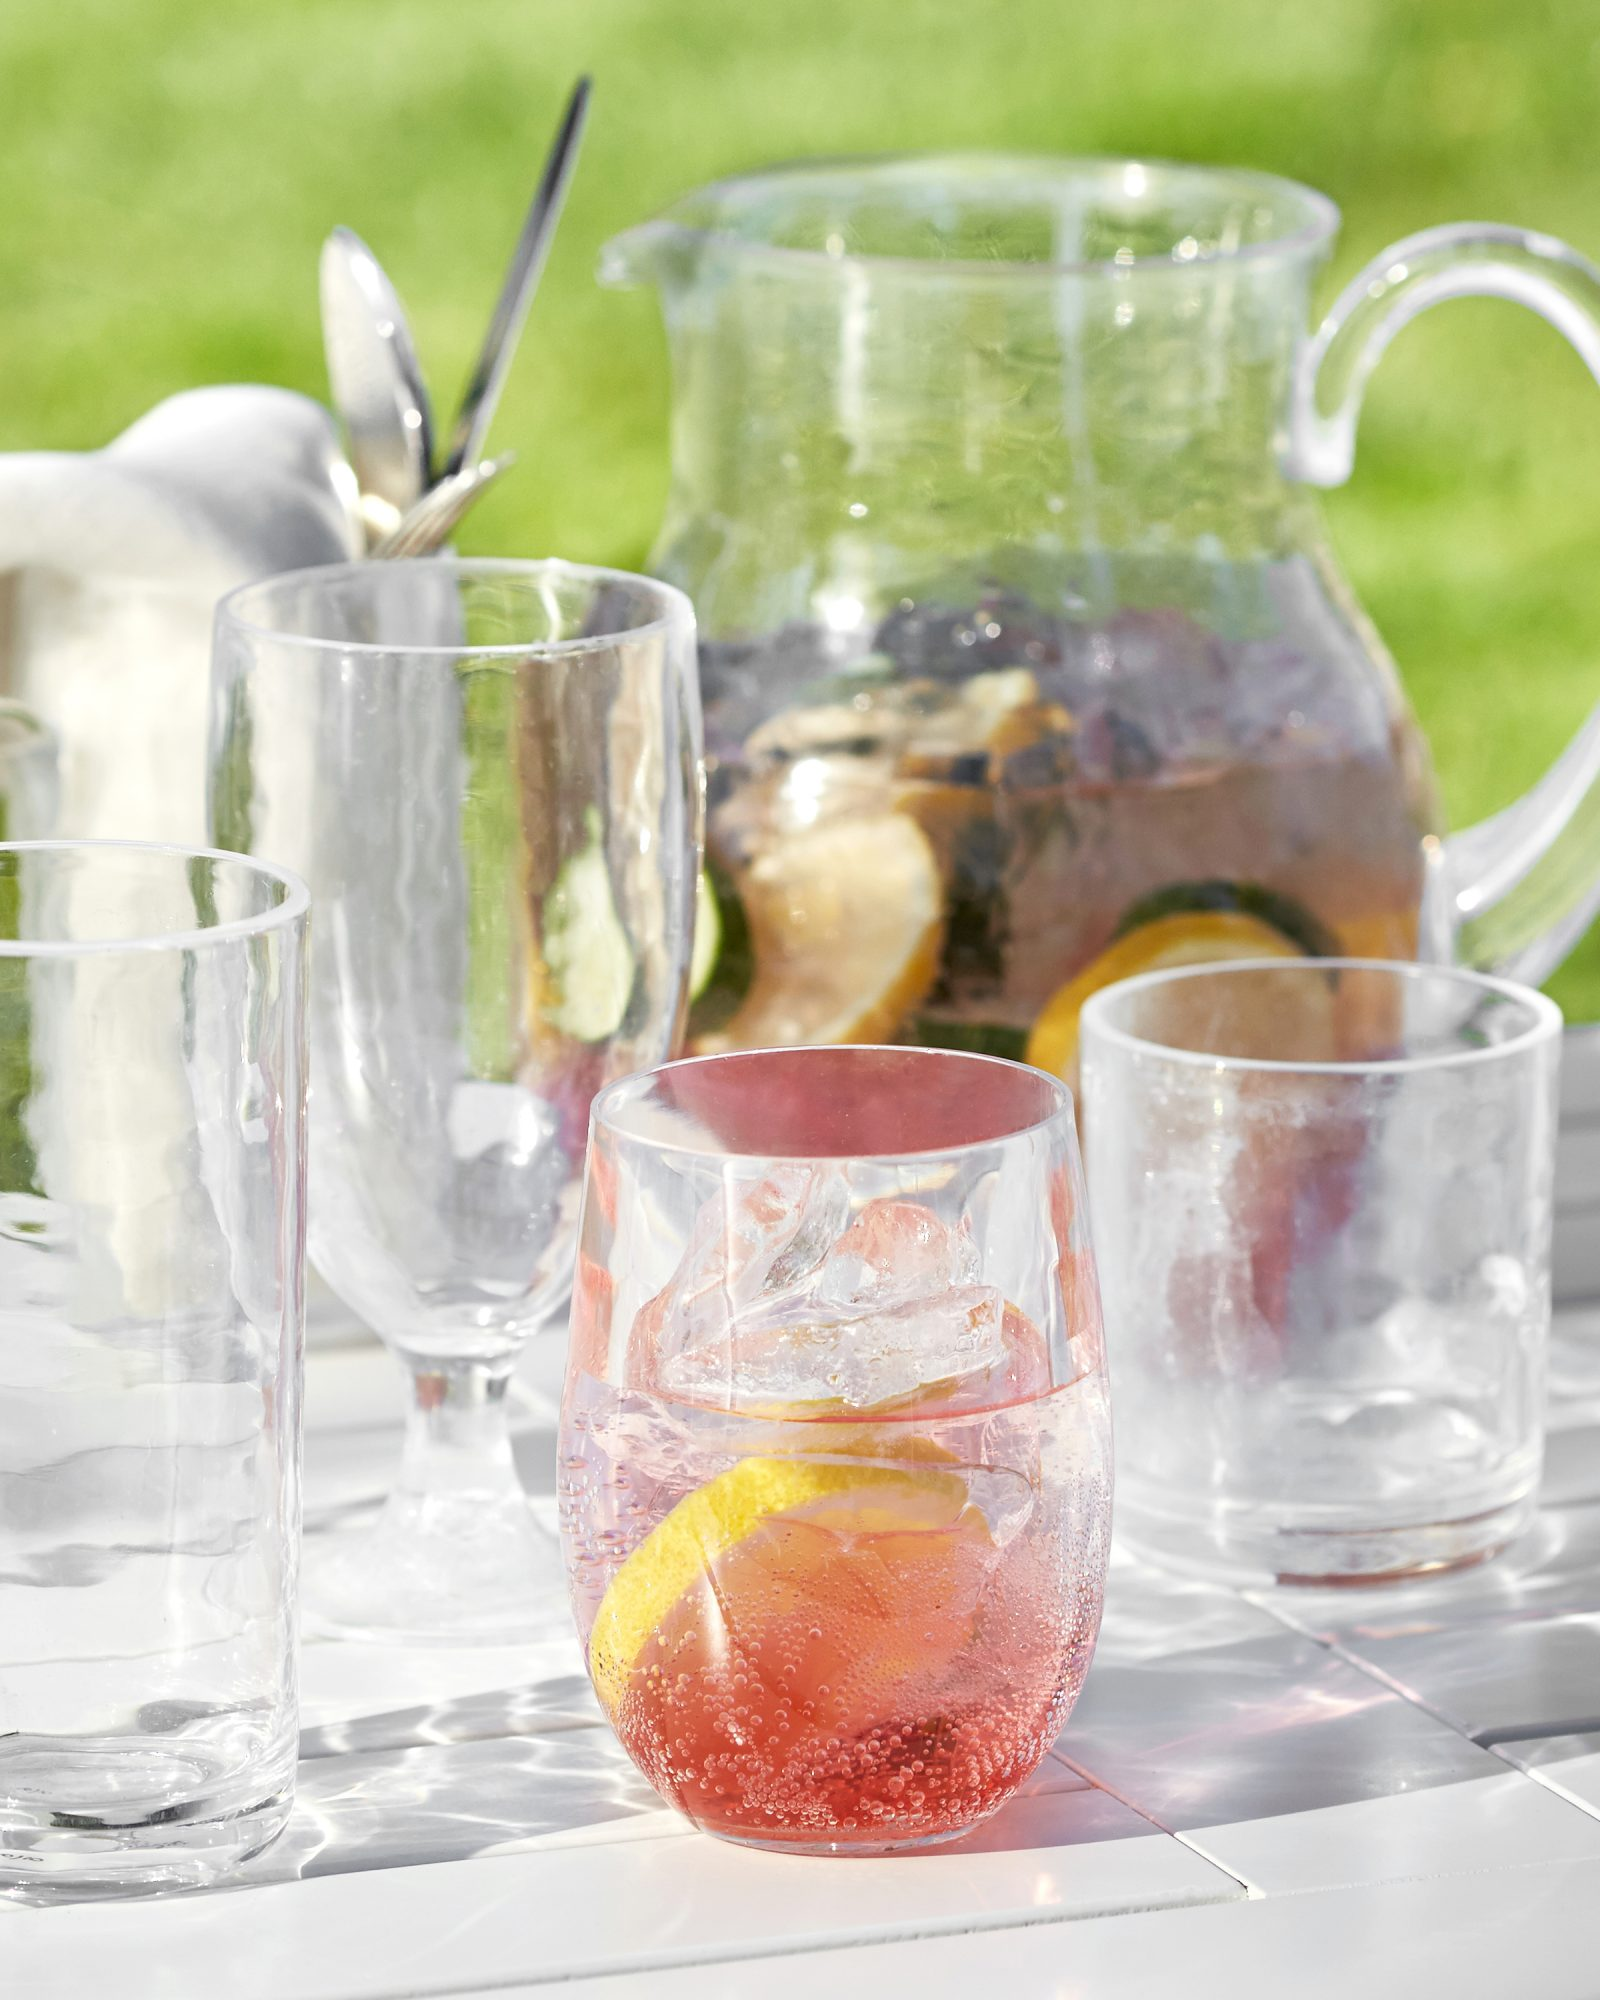 Outdoor glassware and pitcher